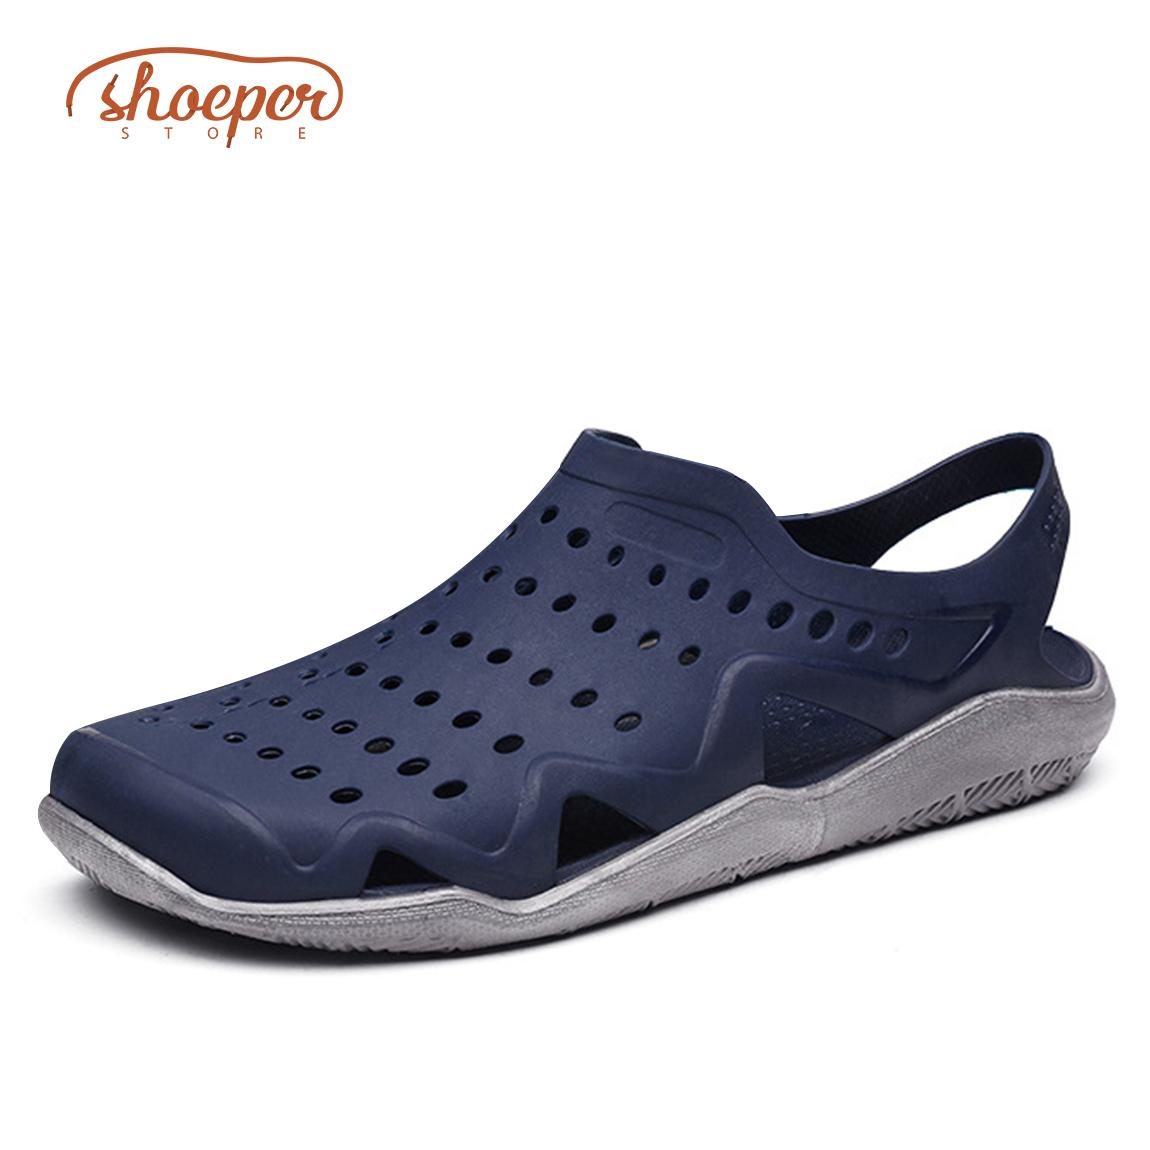 4476d590042c3f ShoePer JXS-2 Outdoor Slip-on Sandals for Men ideal for Rainy or Summer